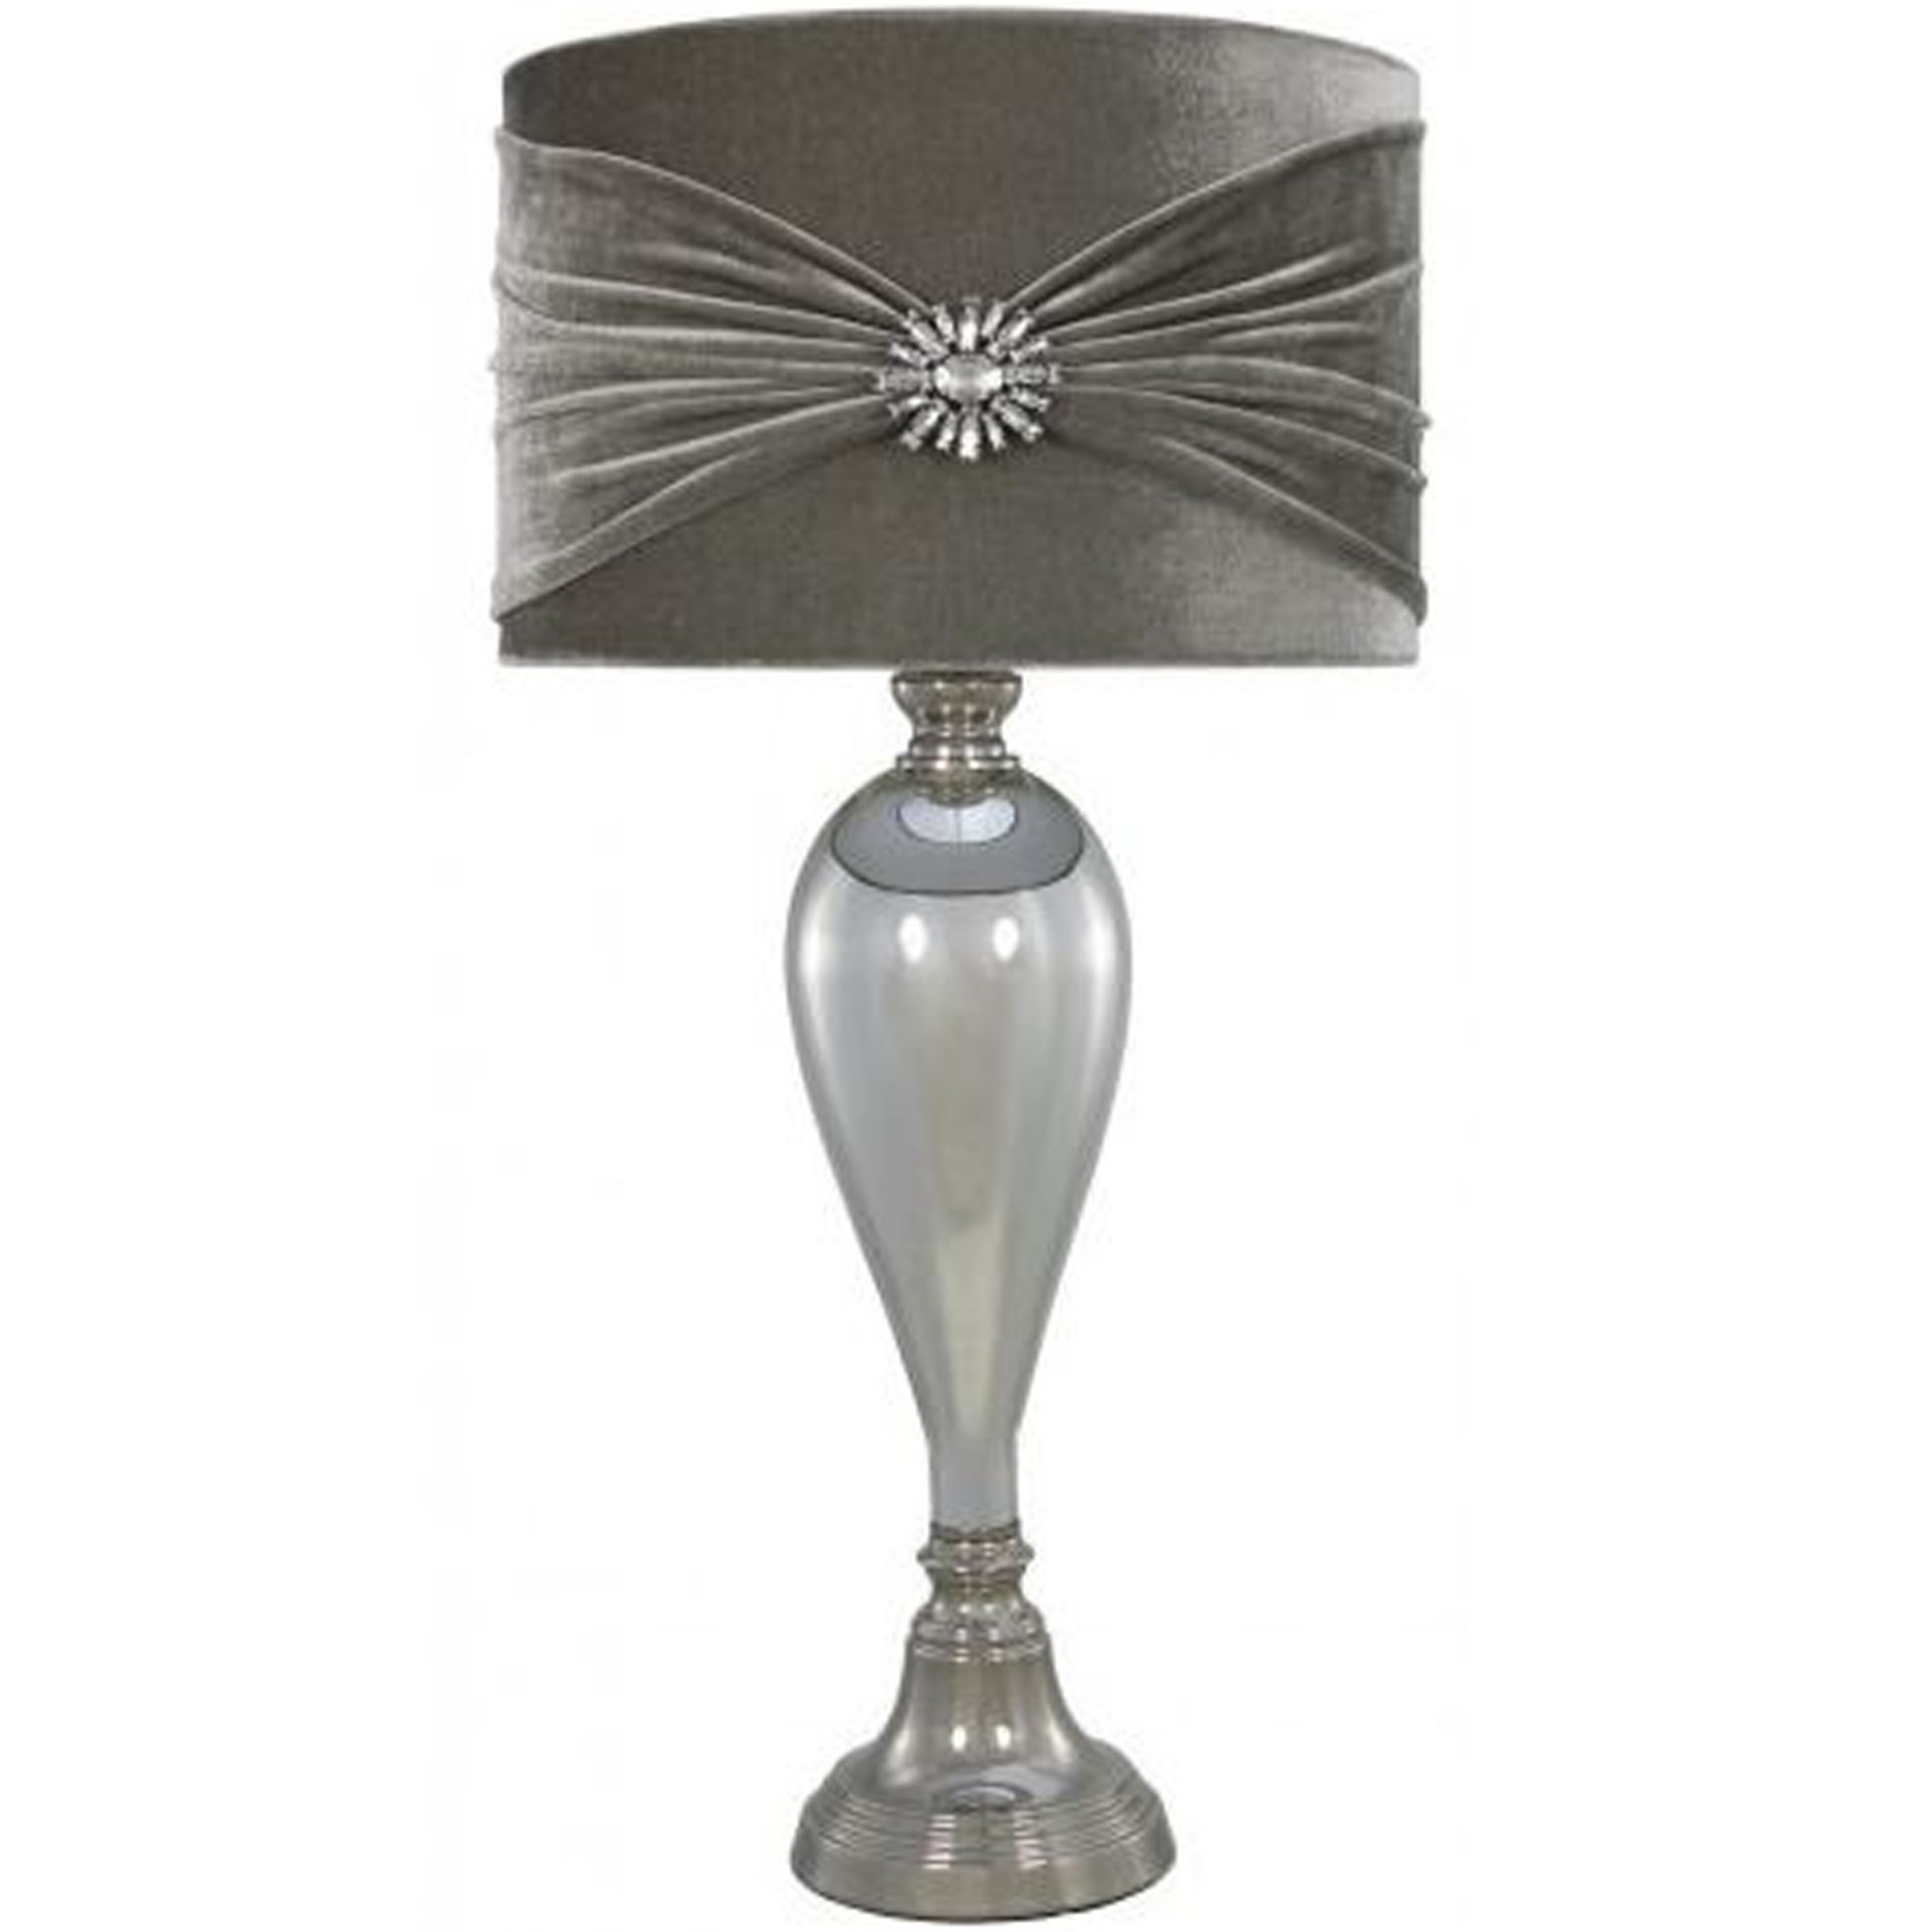 Antique French Style Chrome Glass Table Lamp Lamp Homesdirect365